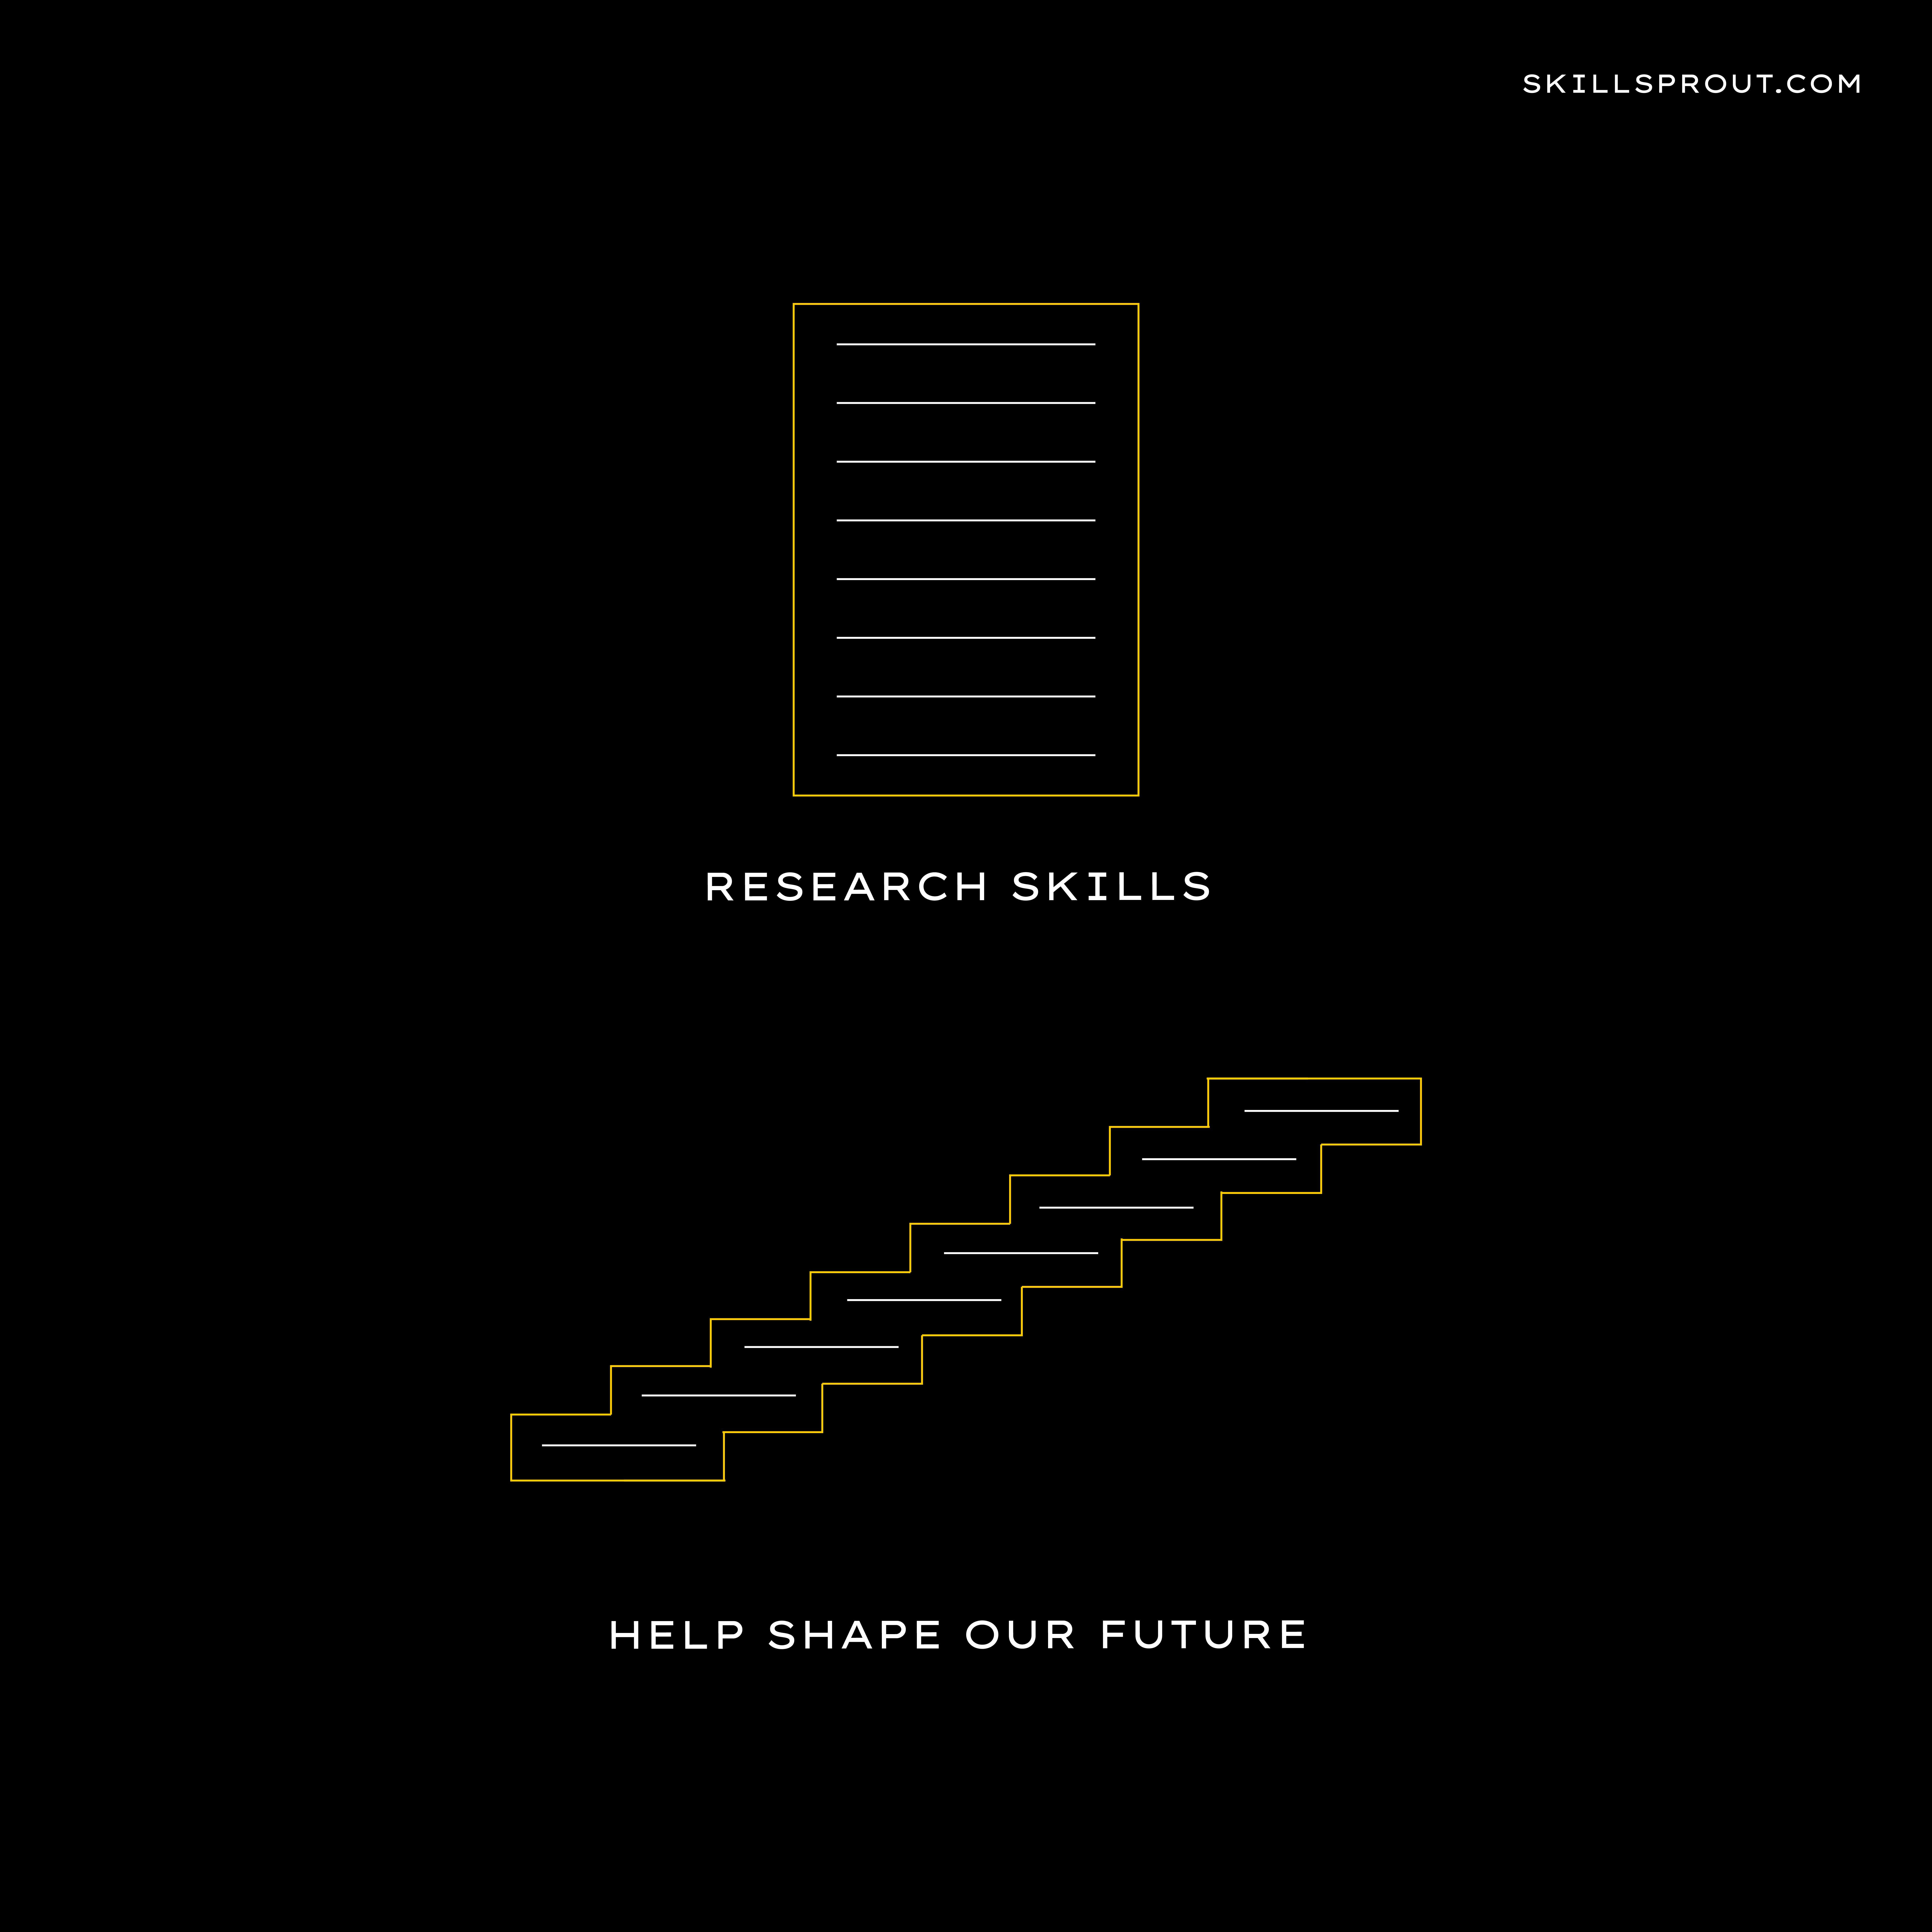 Research skills help shape our future.